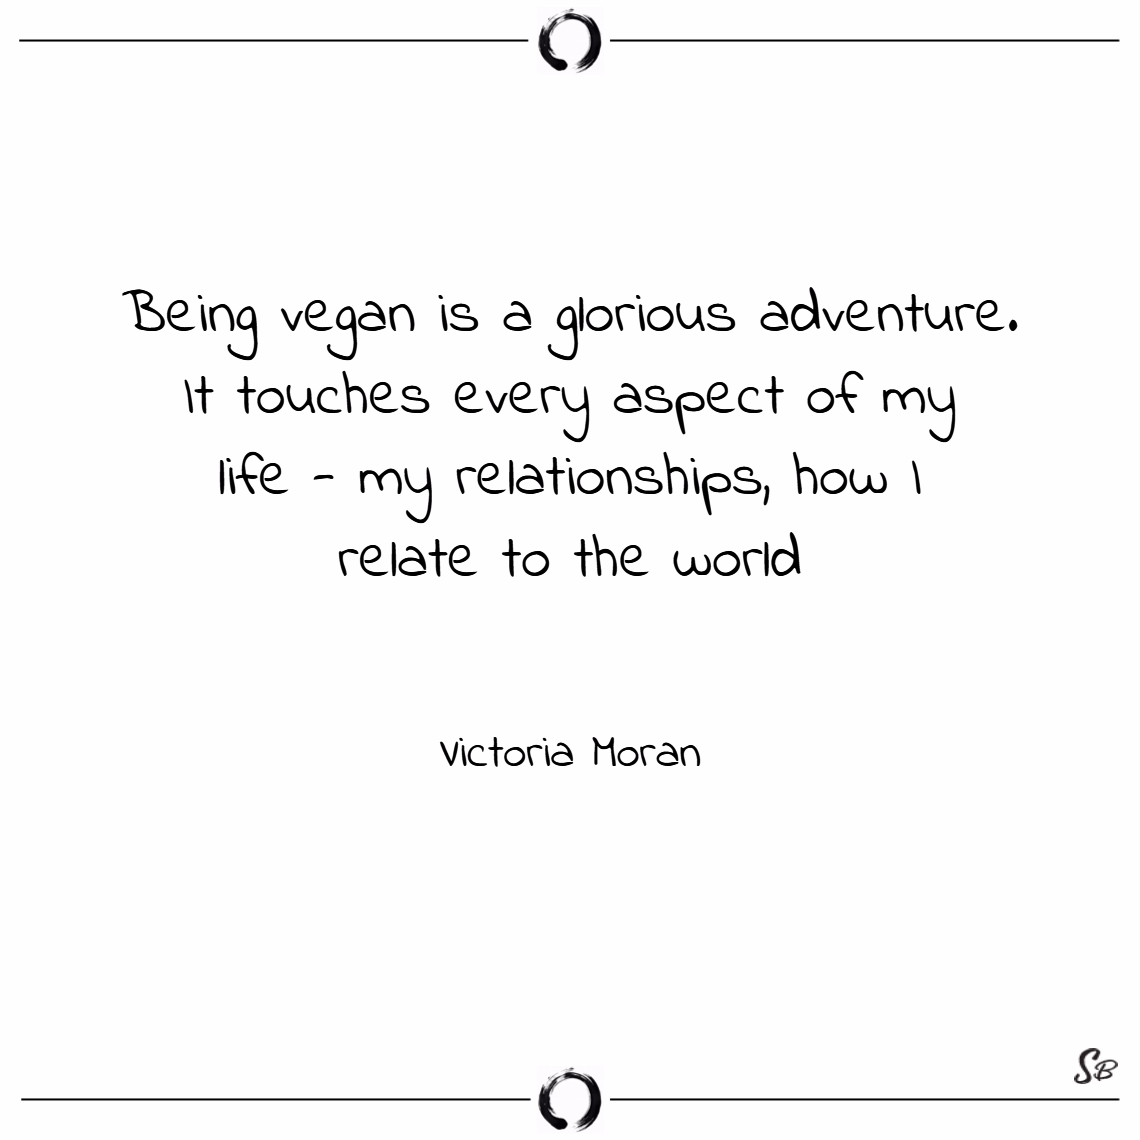 Being vegan is a glorious adventure. it touches every aspect of my life my relationships, how i relate to the world. – victoria moran